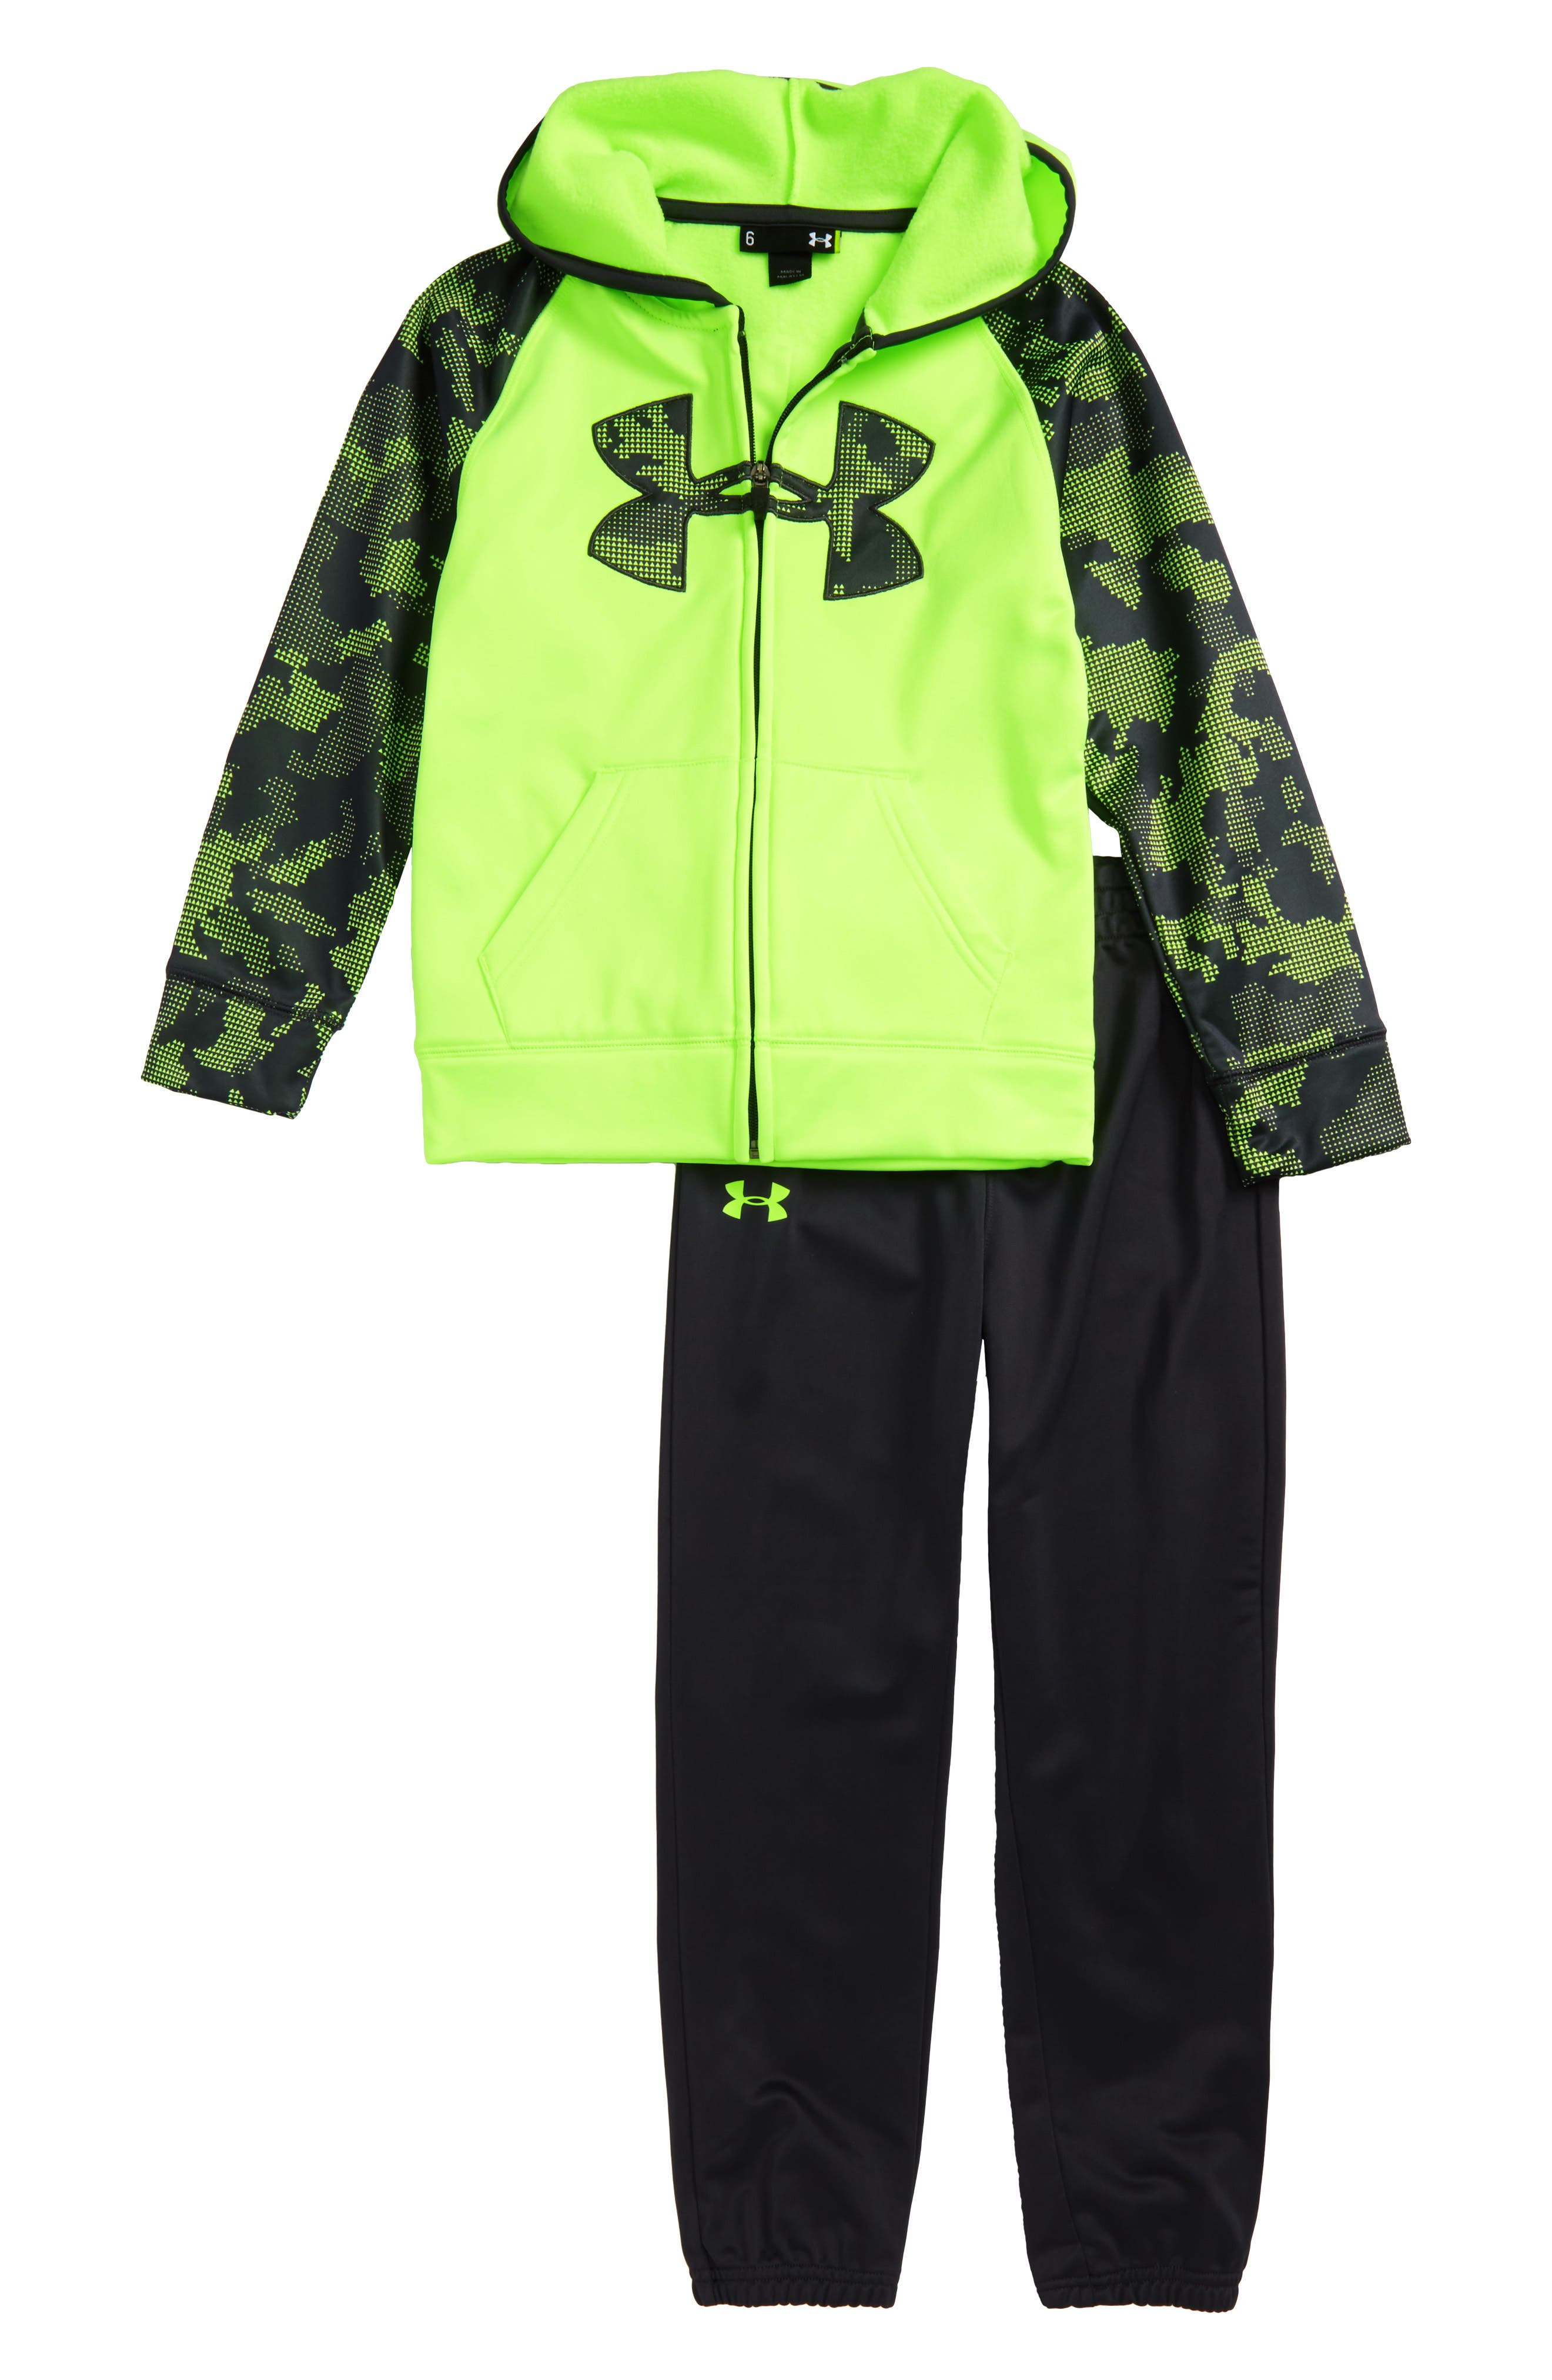 Under Armour Utility Hoodie & Pants Set (Toddler Boys & Little Boys)